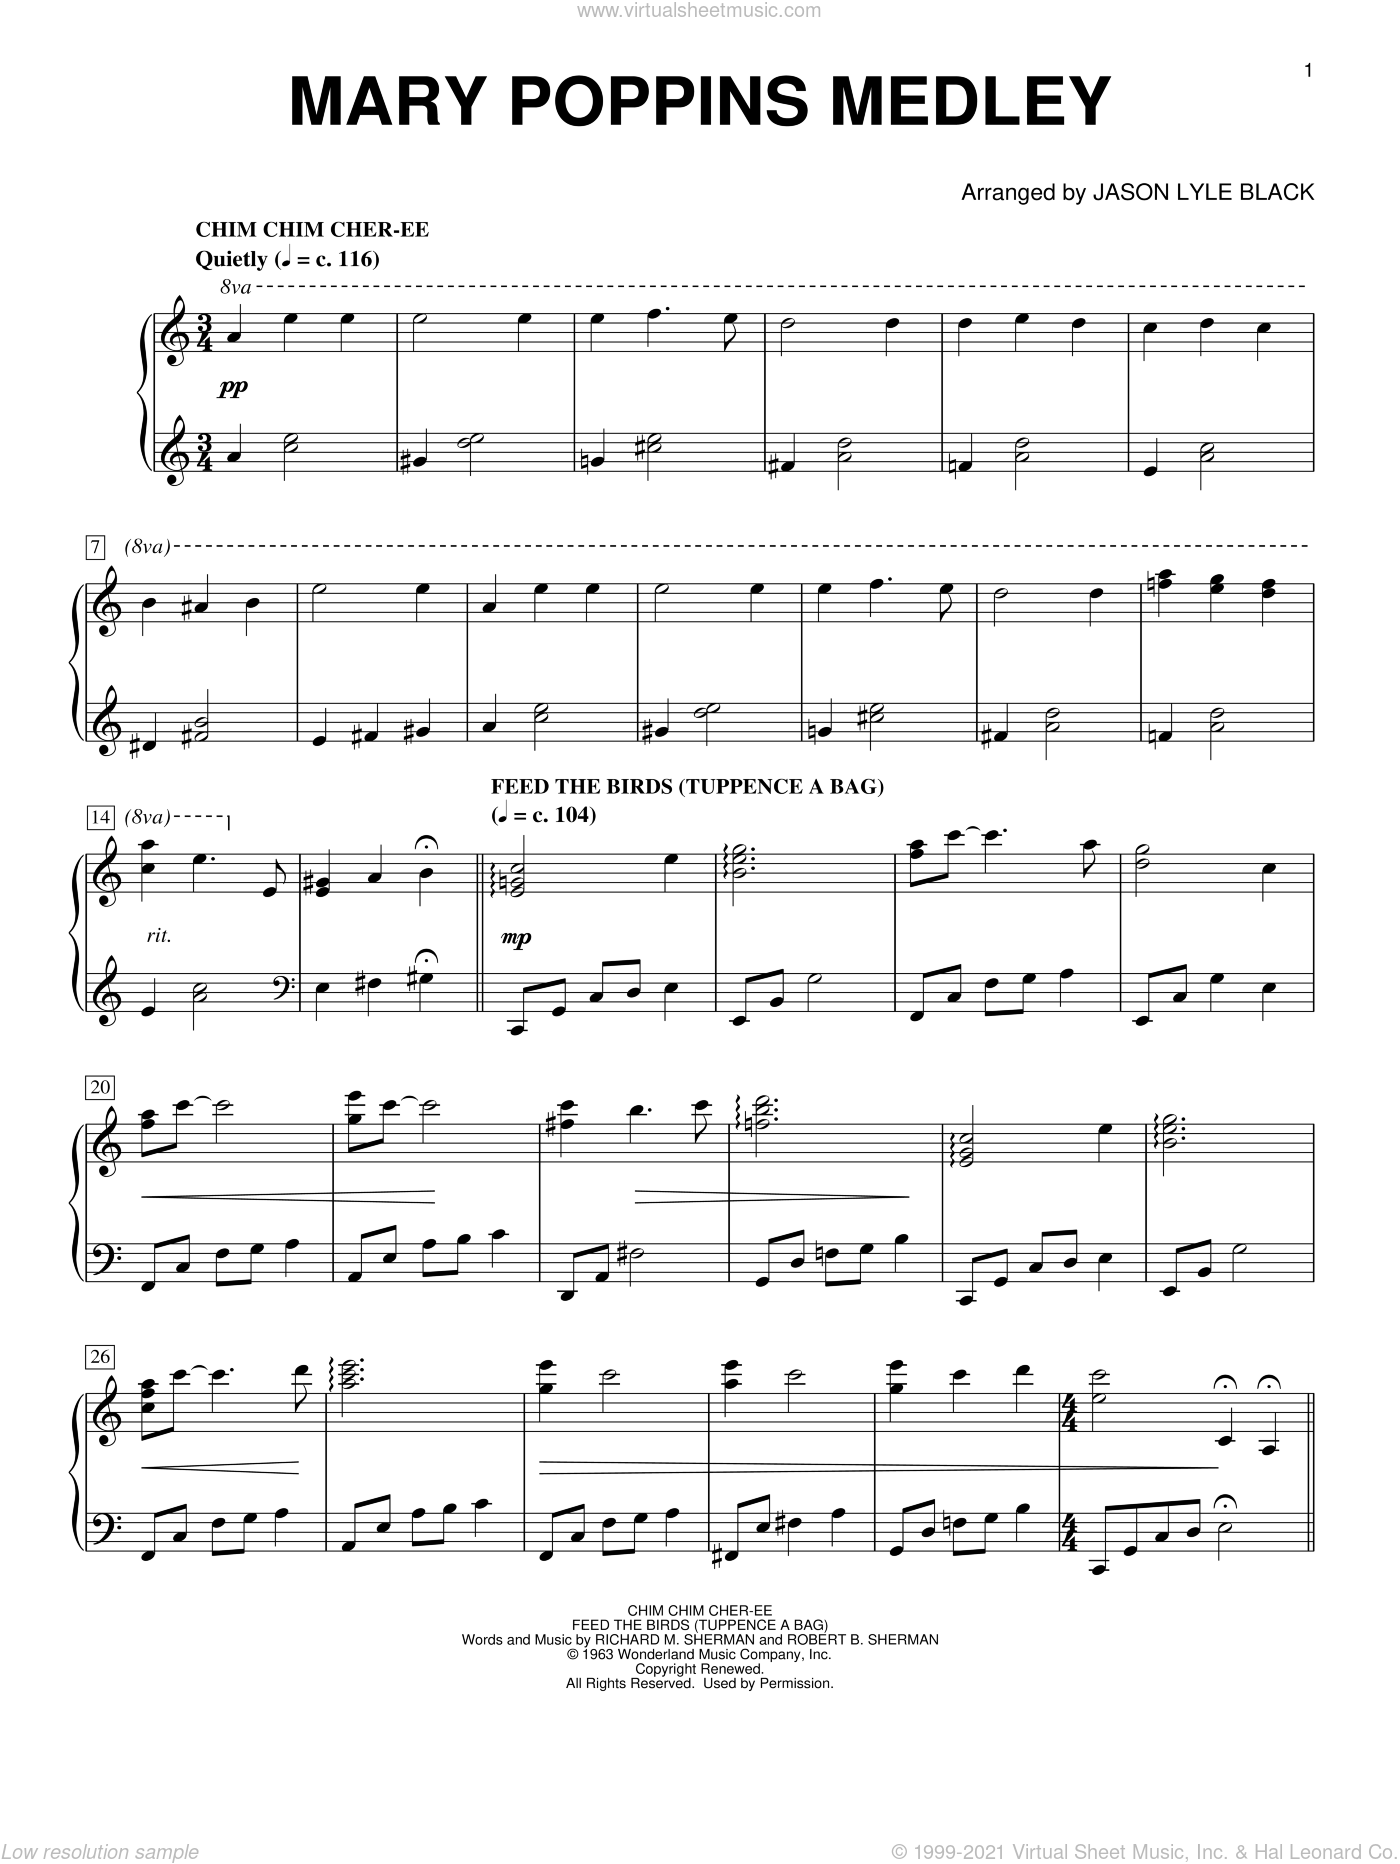 Mary Poppins Medley (arr. Jason Lyle Black) sheet music for piano solo by Richard M. Sherman, Jason Lyle Black, New Christy Minstrels, Robert B. Sherman and Sherman Brothers, intermediate skill level